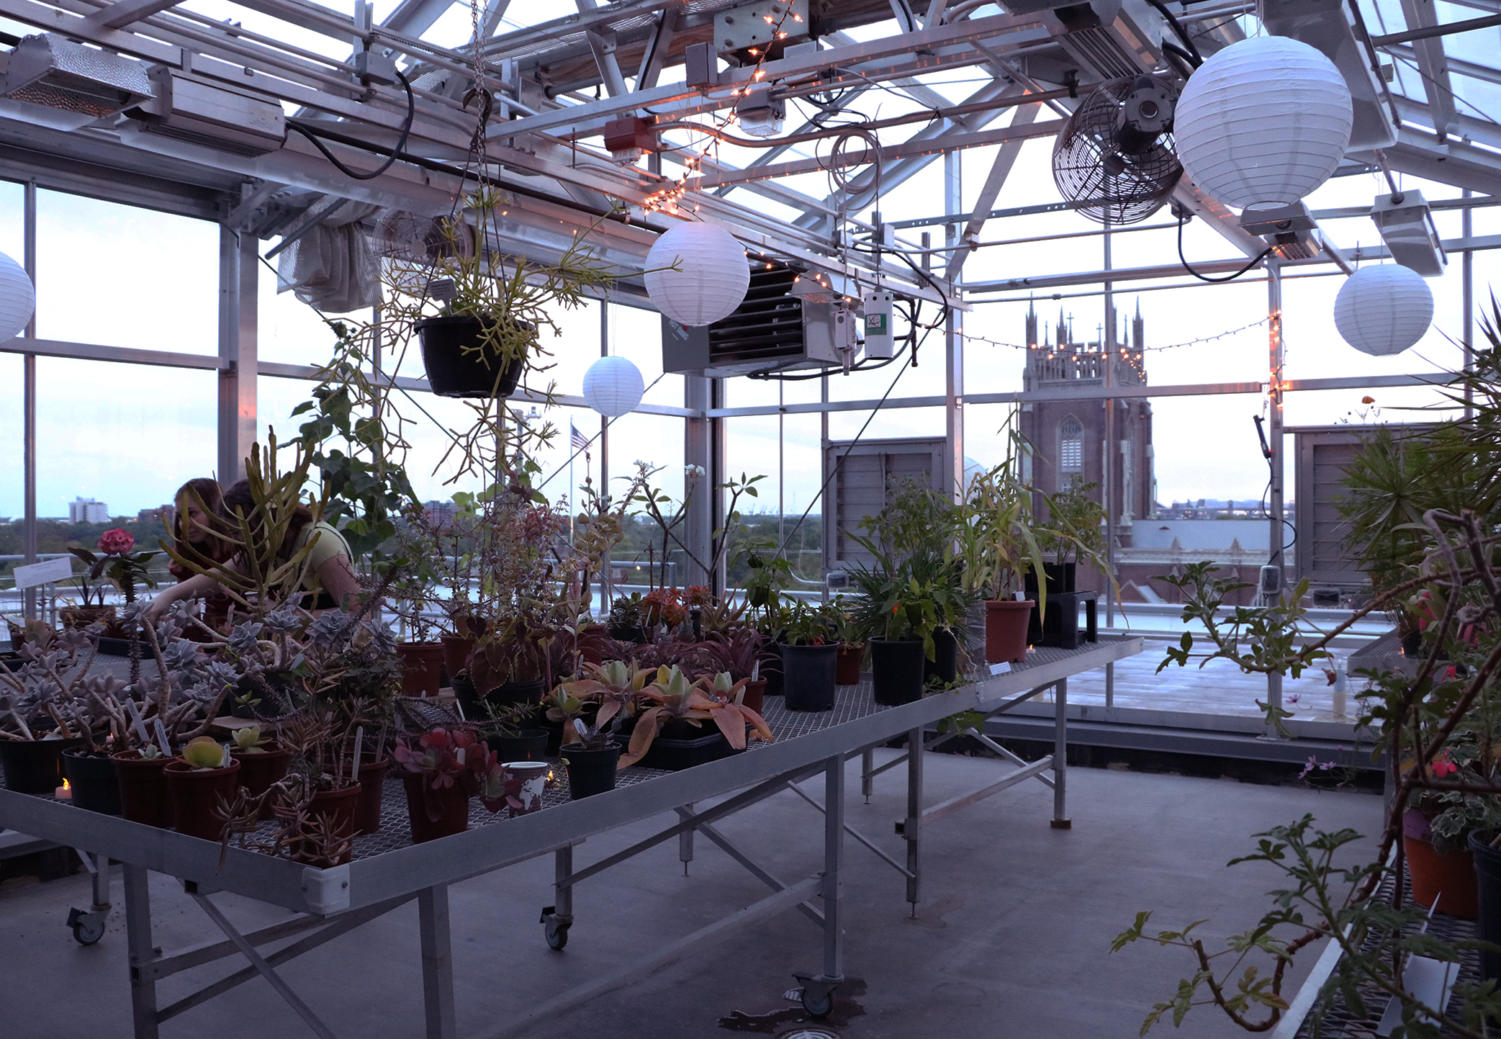 The greenhouse located on the roof of Monroe Hall sits lit with fairy lights on April 23. Photo credit: Hannah Renton